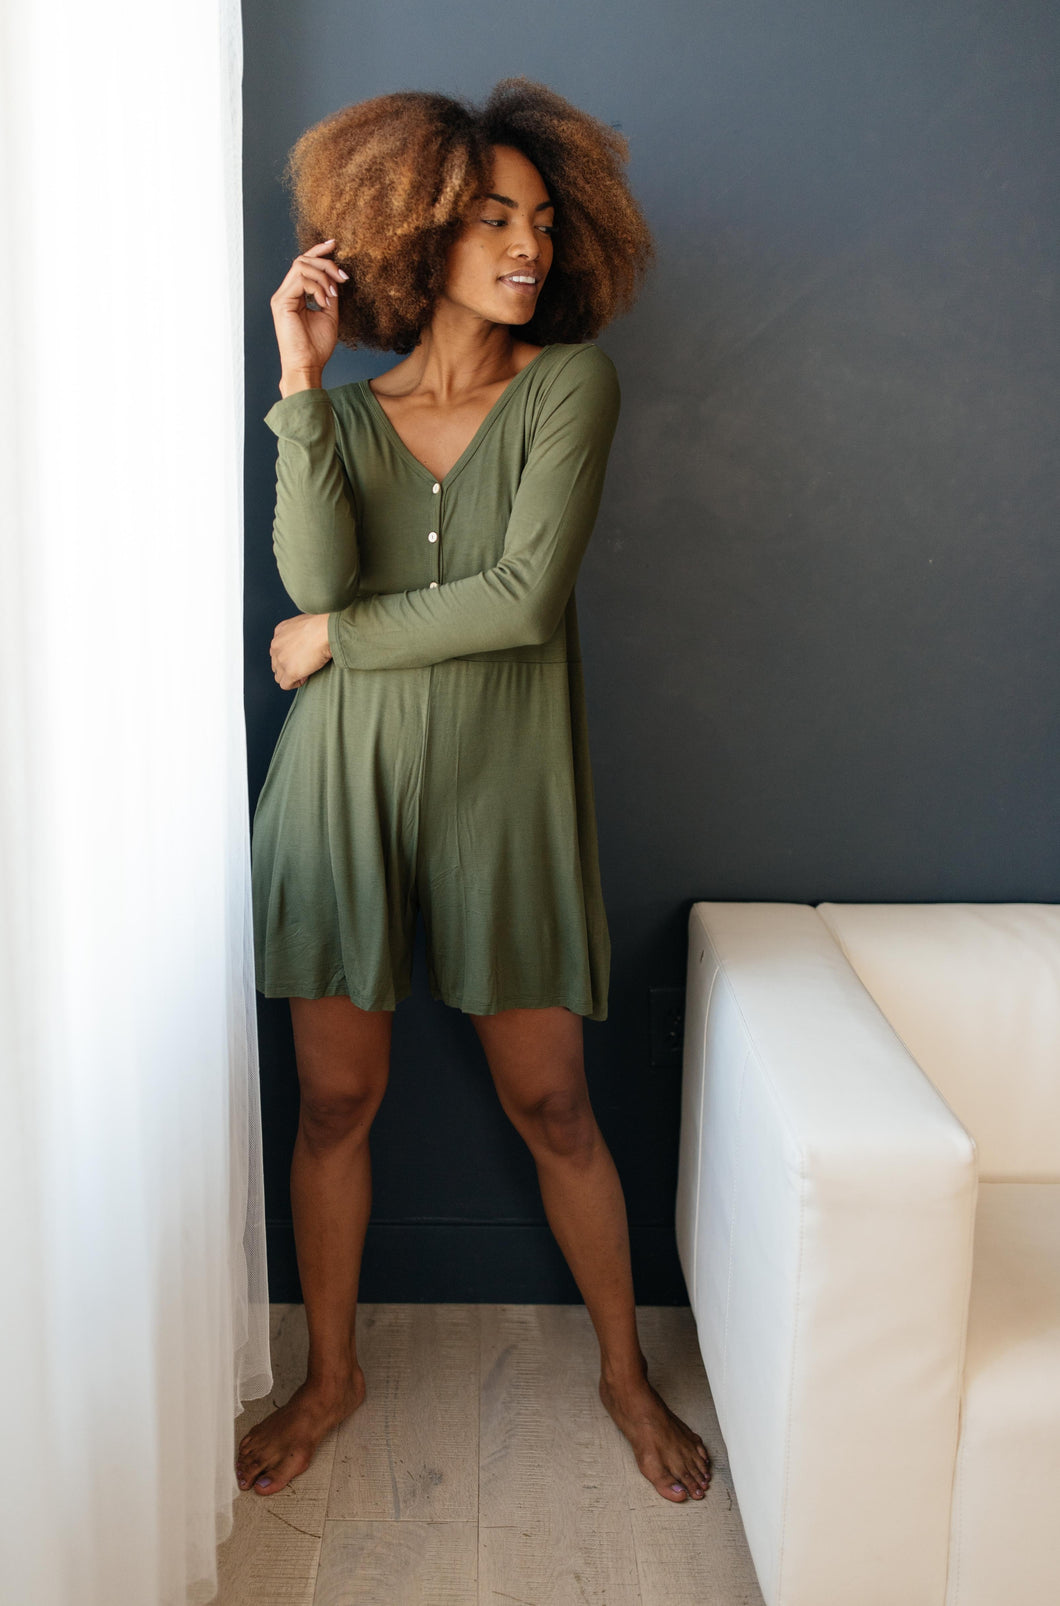 Sweet Dreams Romper in Olive - Smith & Vena Online Boutique